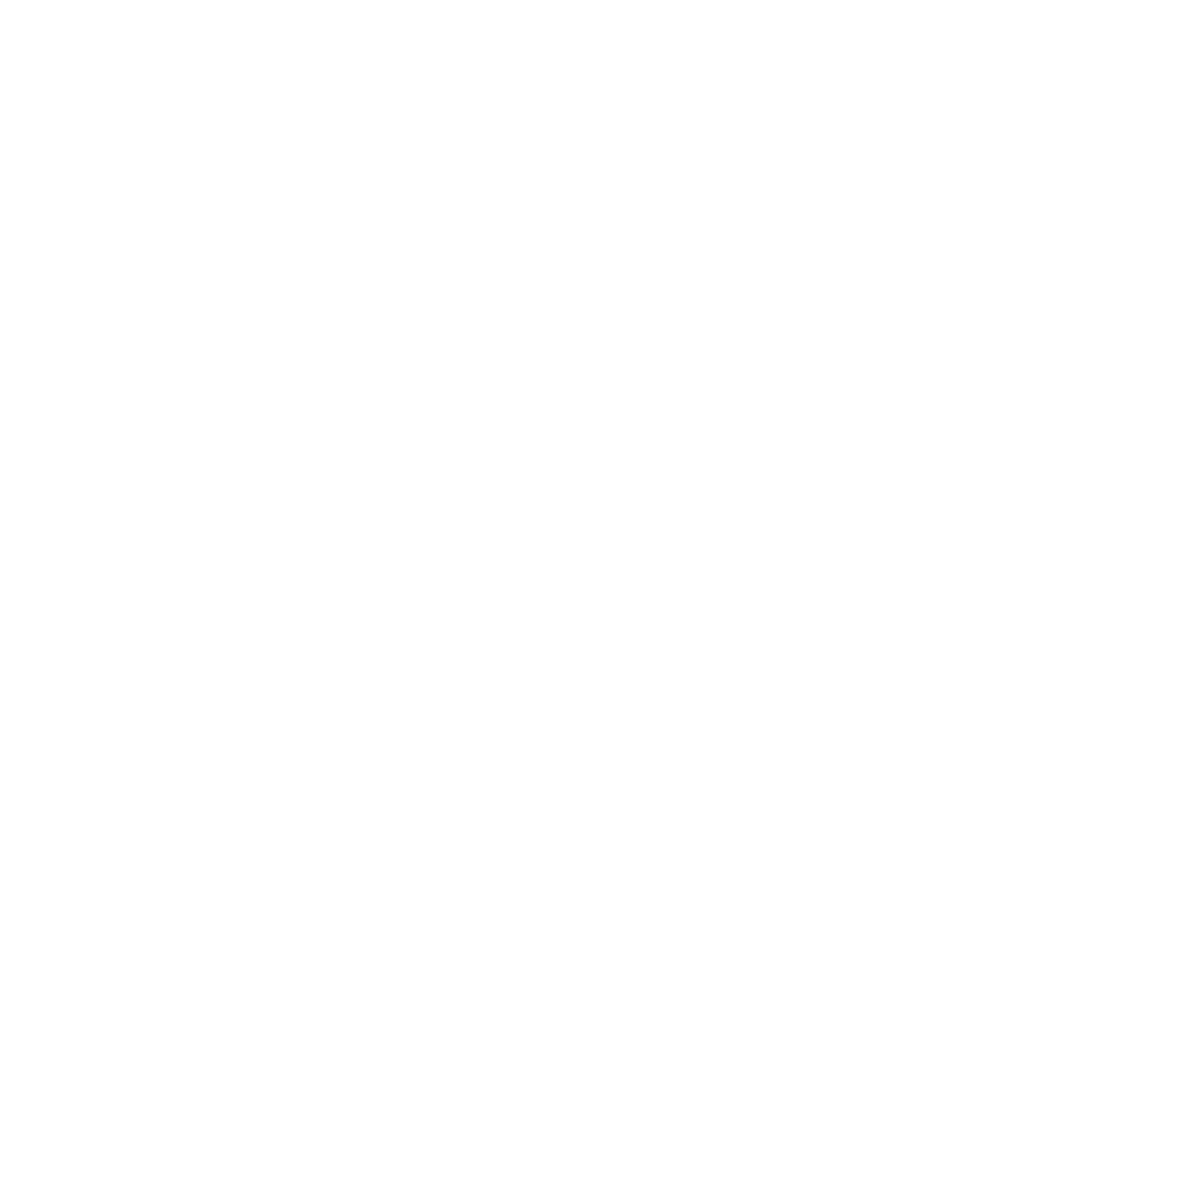 Pack of fish icon